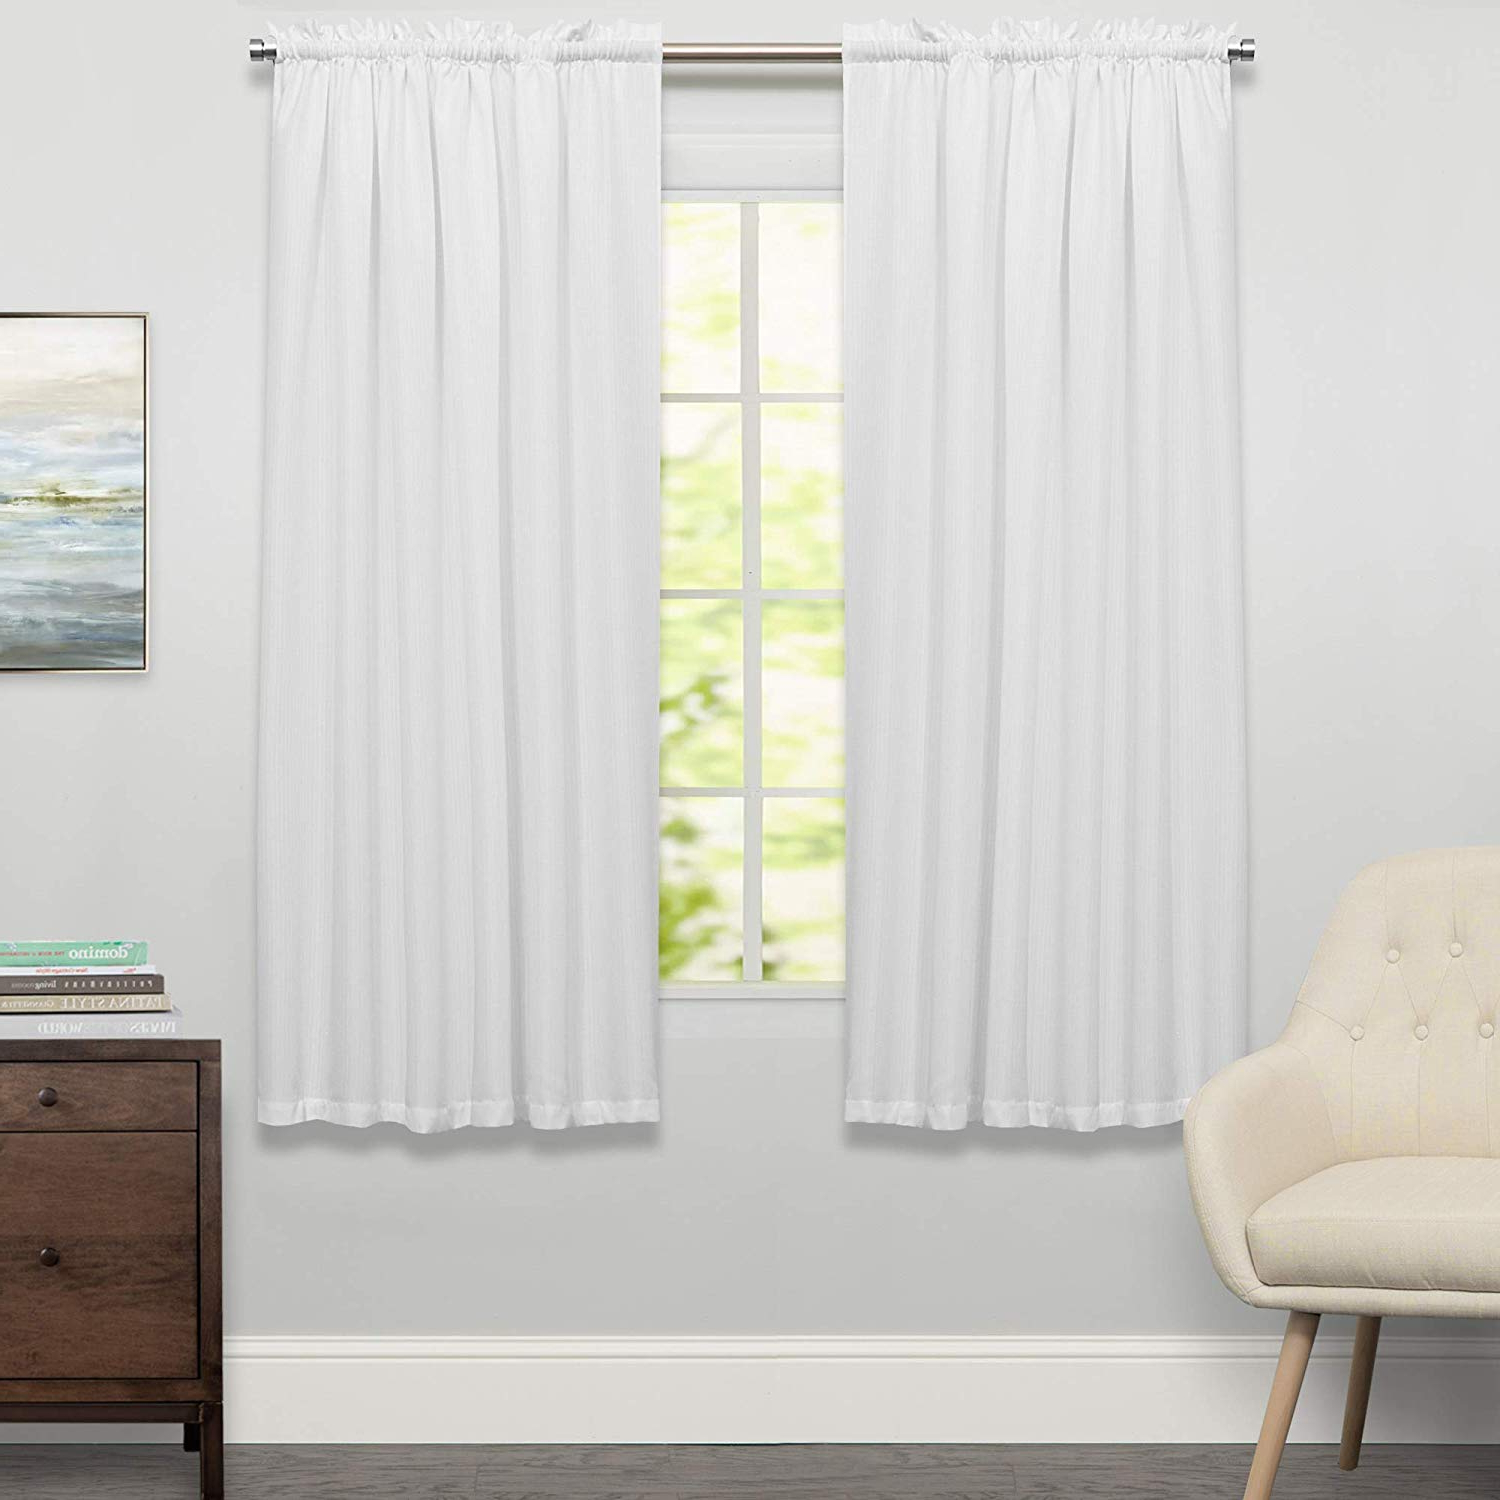 Cotton Classic Toast Window Pane Pattern And Crotchet Trim Tiers Intended For 2020 Sweet Home Collection Cotton Kitchen Window Curtains Pair, Valance, Adirondack Toast (View 6 of 20)